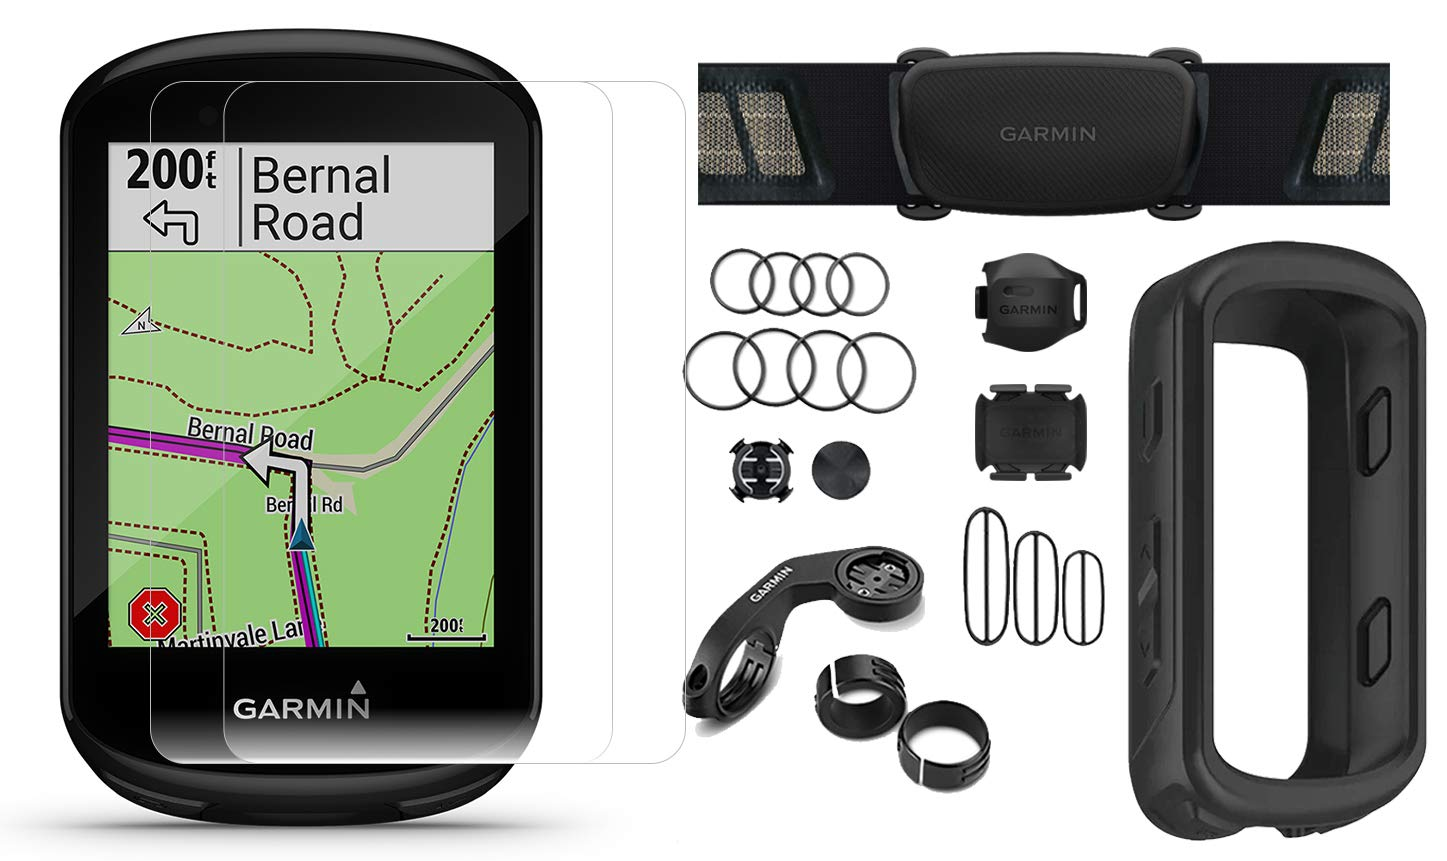 Garmin Edge 830 (2019 Version) Cycle GPS Bundle with Chest Strap HRM, Bluetooth Speed/Cadence Sensors, Silicone Case & Screen Protectors (x2) | Touchscreen, Mapping | Bike Computer (Black + Sensors) by PlayBetter